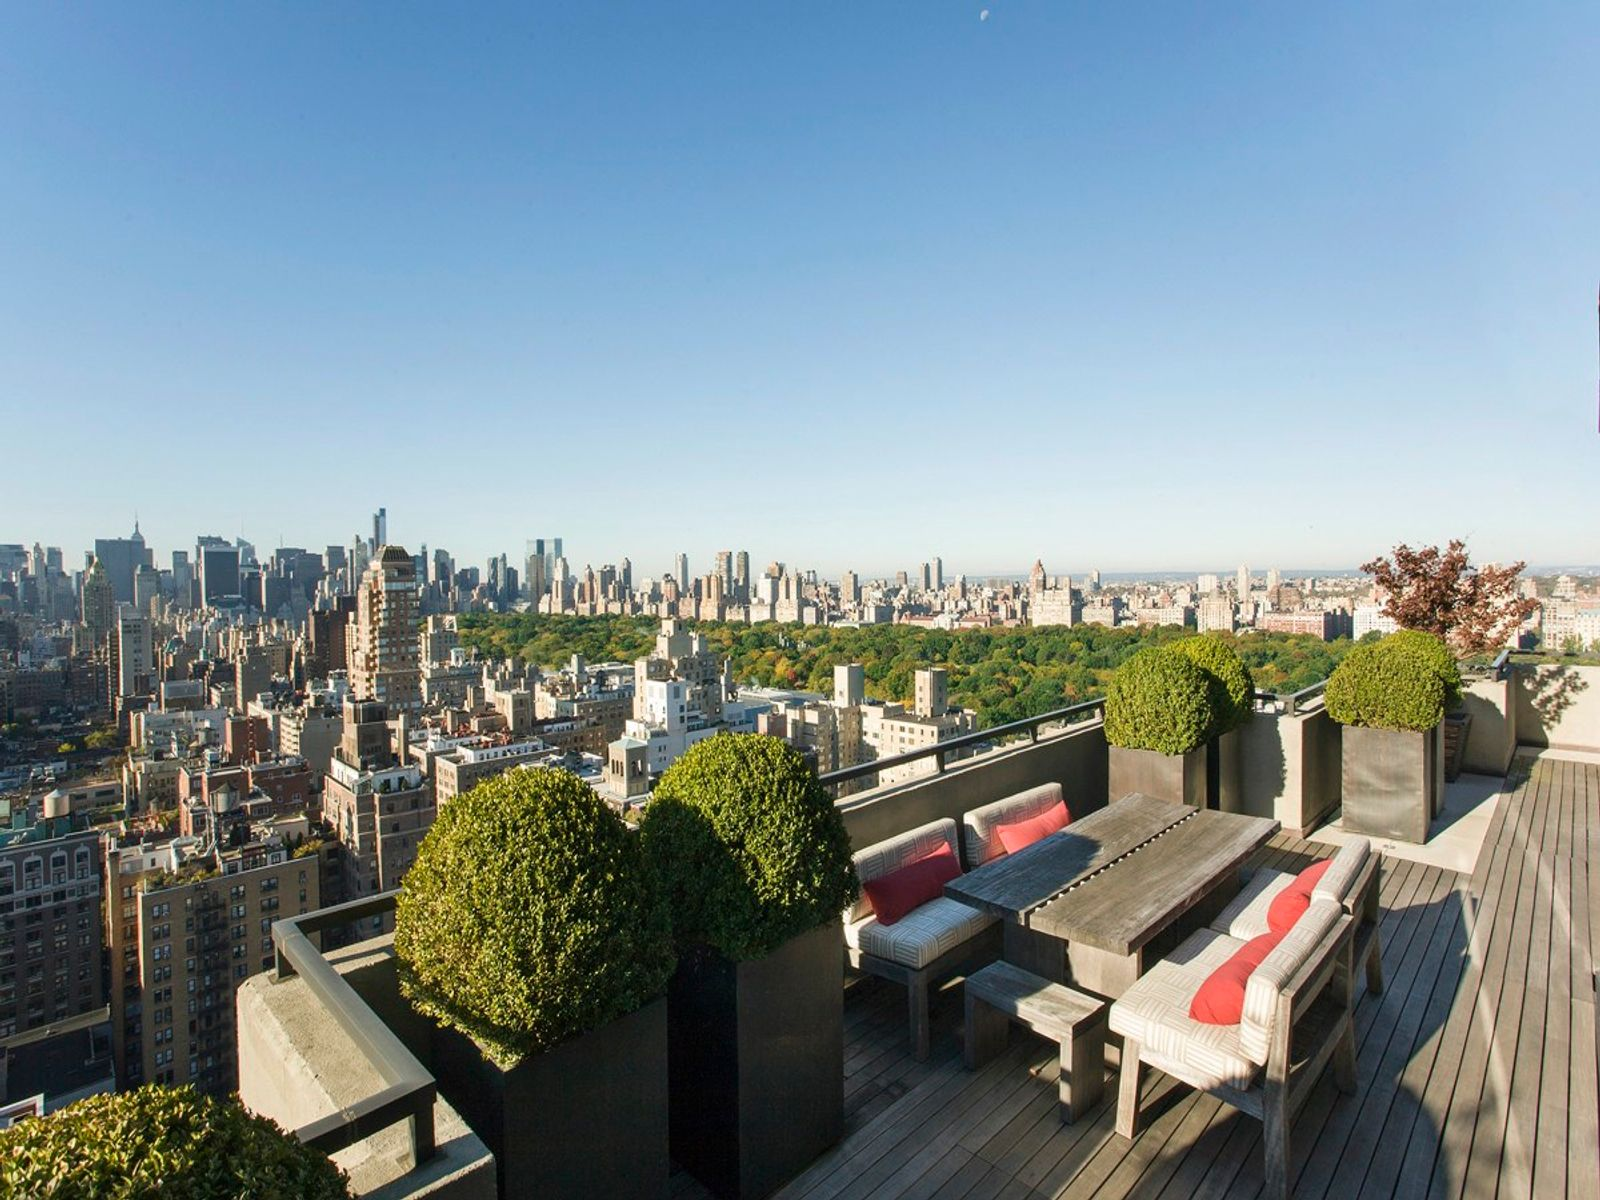 Ultimate Penthouse - 50 East 89th Street, New York NY Coop - New York City Real Estate